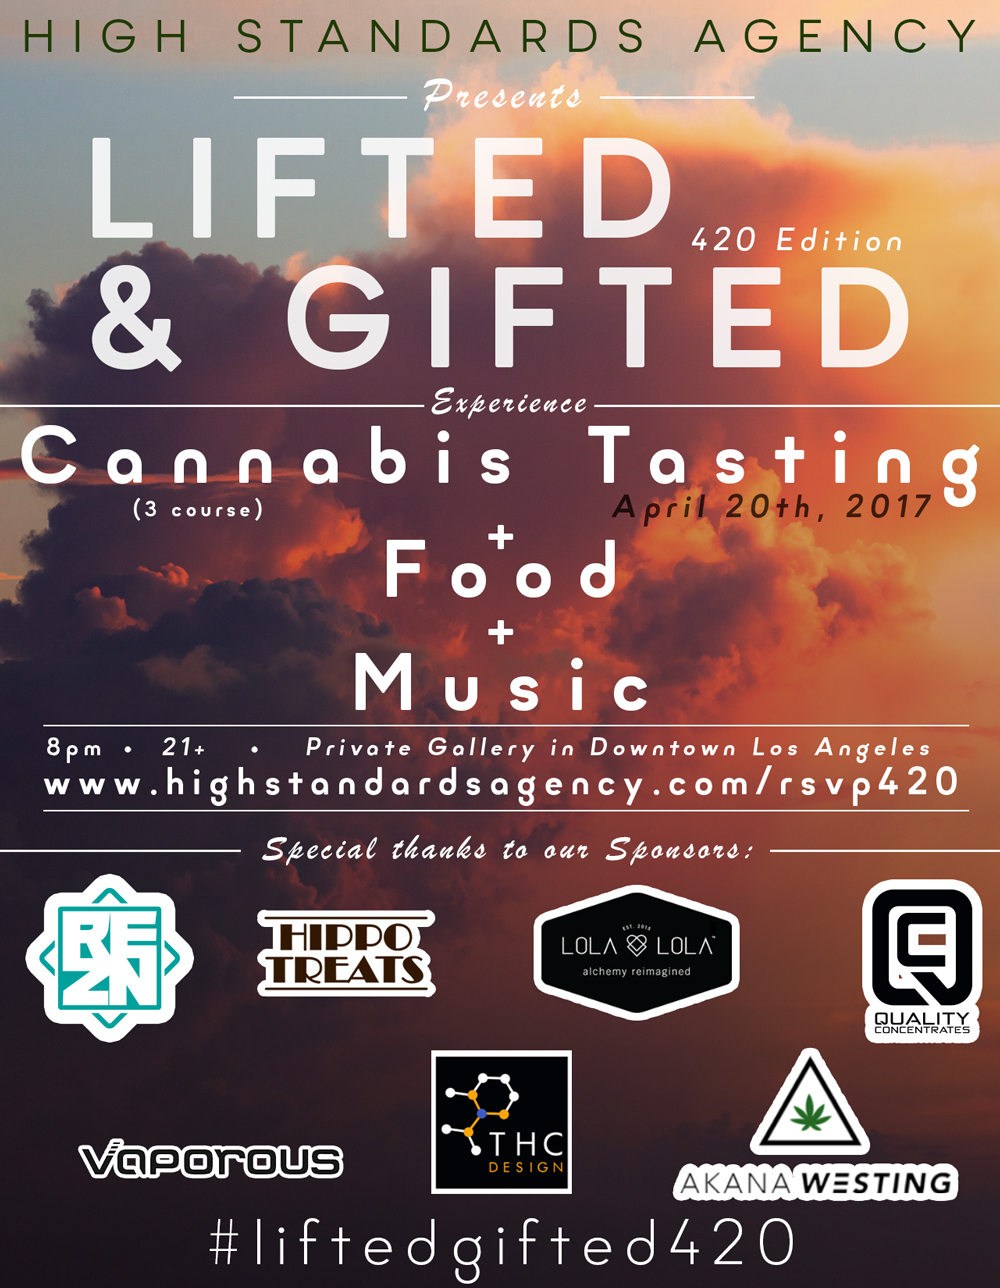 lifted and gifted 420 cannabis event DTLA 2017